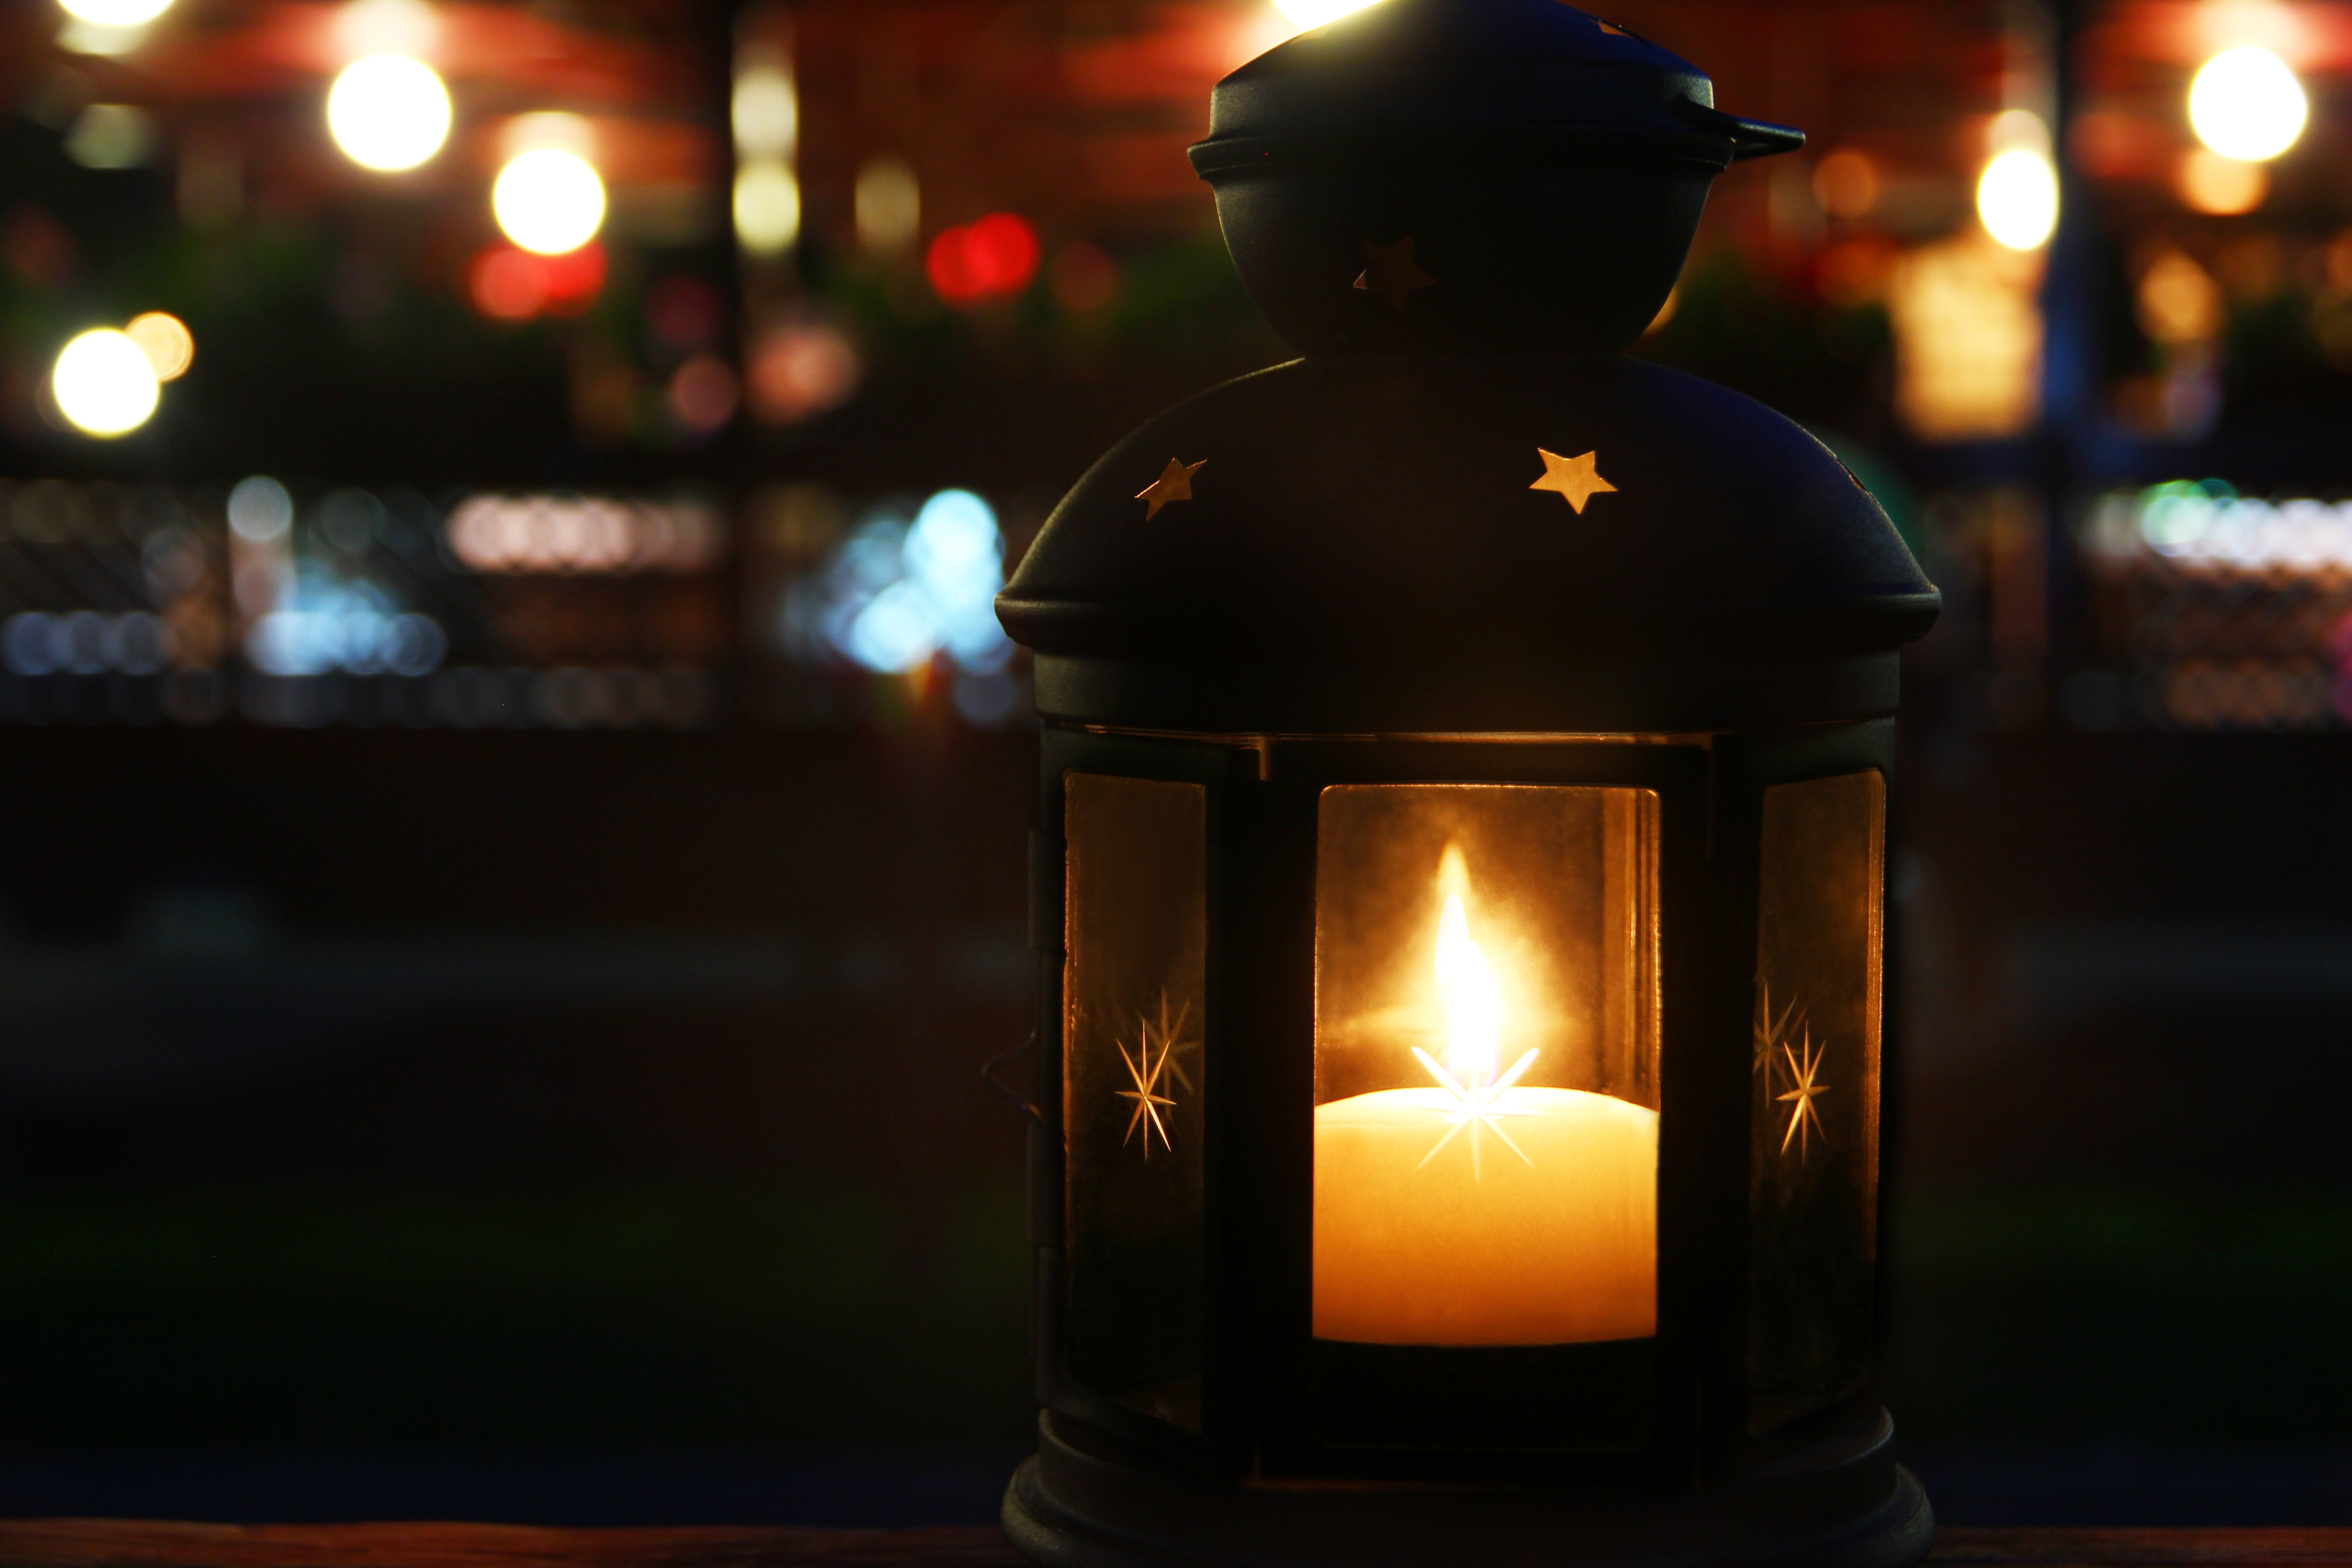 How To Use Outdoor Decorative Candle Lanterns: 5 Steps Within Current Outdoor Decorative Lanterns (View 15 of 20)